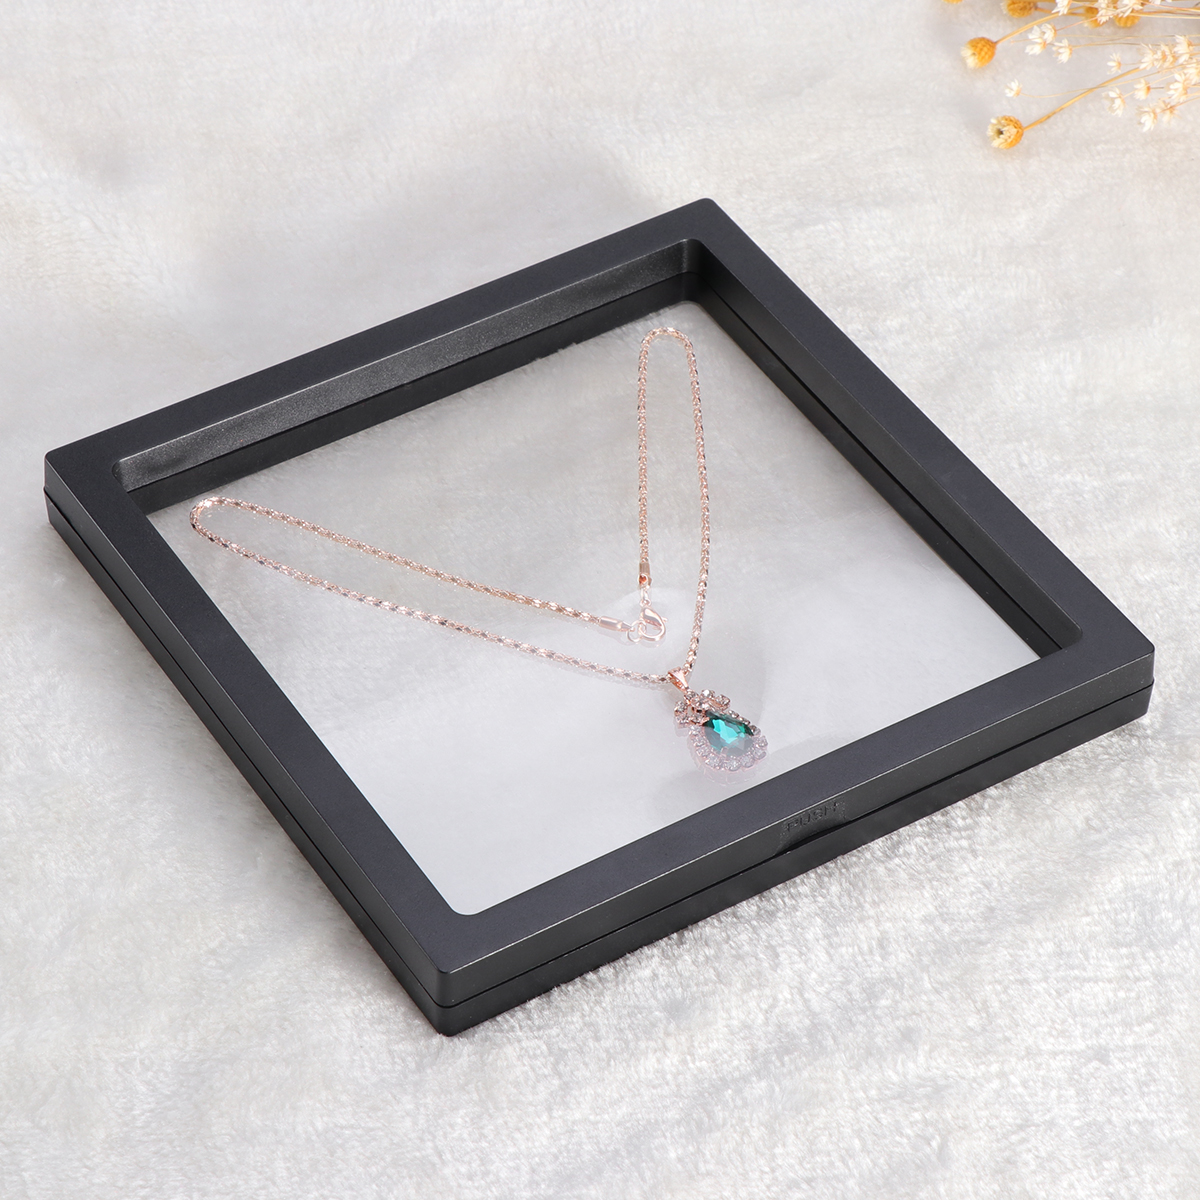 3D Floating Frame Shadow Box Display Case Coin Box Jewelry Display